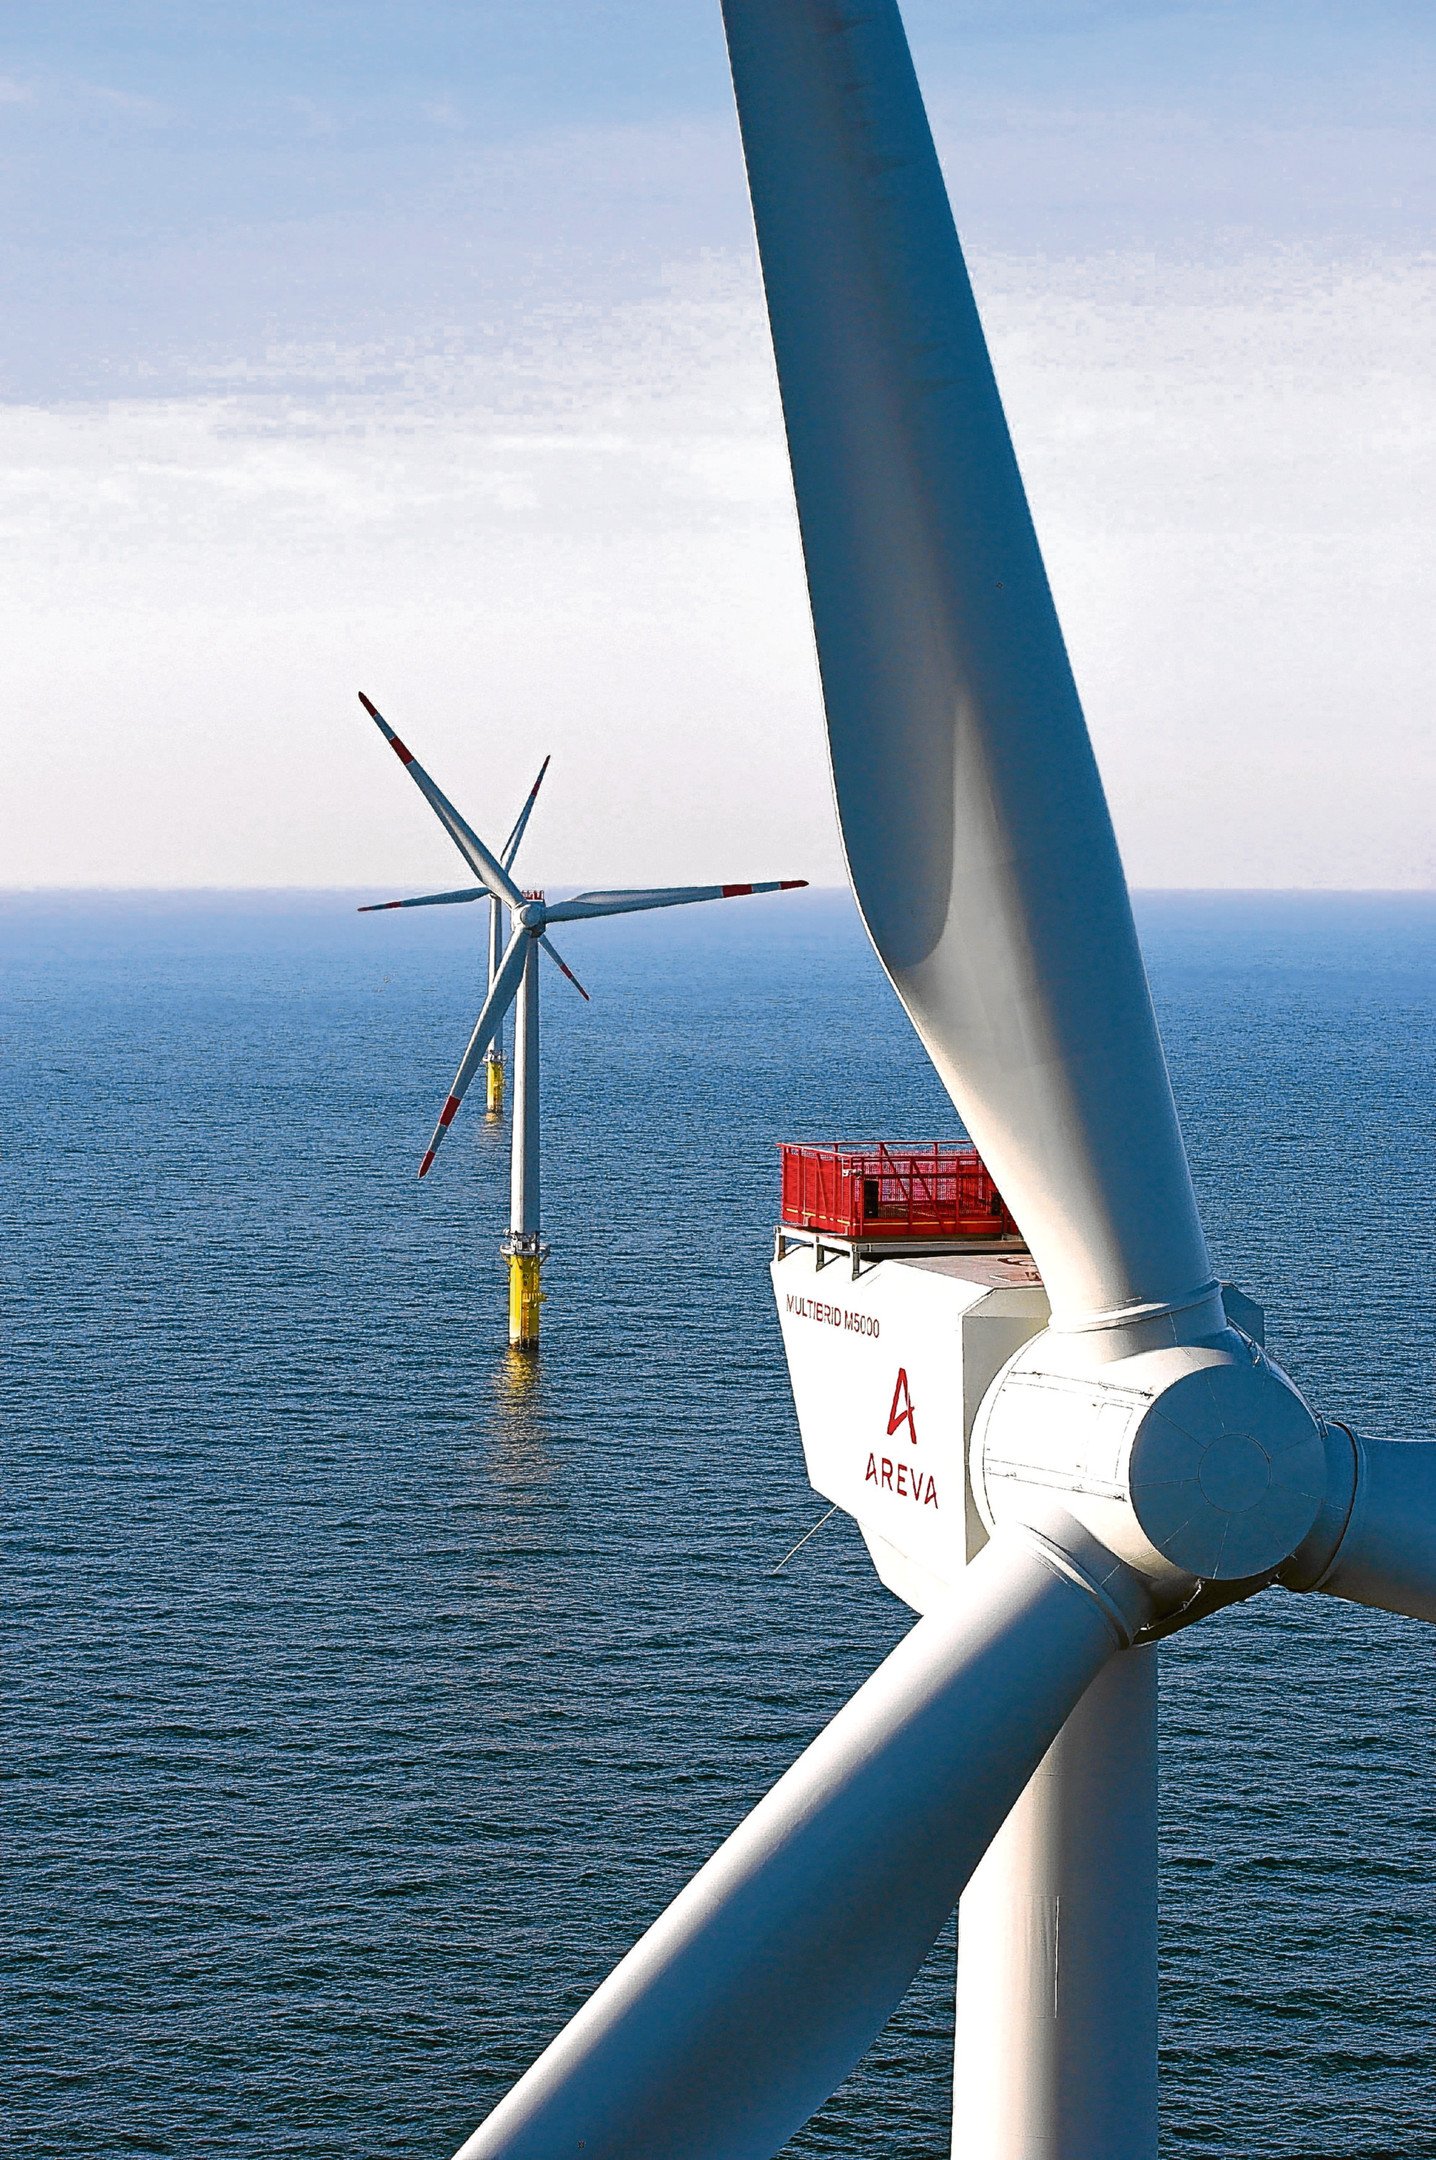 """Undated handout photo issued by Areva Wind of Areva wind turbines, as the offshore wind company will locate its UK turbine manufacturing base in Scotland. PRESS ASSOCIATION Photo. Issue date: Monday November 19, 2012. Chief executive Luc Oursel said: """"Scotland is known to be a pioneer in renewables and its commitment to offshore wind in particular was a key part of our decision to locate our future UK manufacturing base there. See PA story INDUSTRY Wind. Photo credit should read: Areva Wind/PA Wire NOTE TO EDITORS: This handout photo may only be used in for editorial reporting purposes for the contemporaneous illustration of events, things or the people in the image or facts mentioned in the caption. Reuse of the picture may require further permission from the copyright holder."""